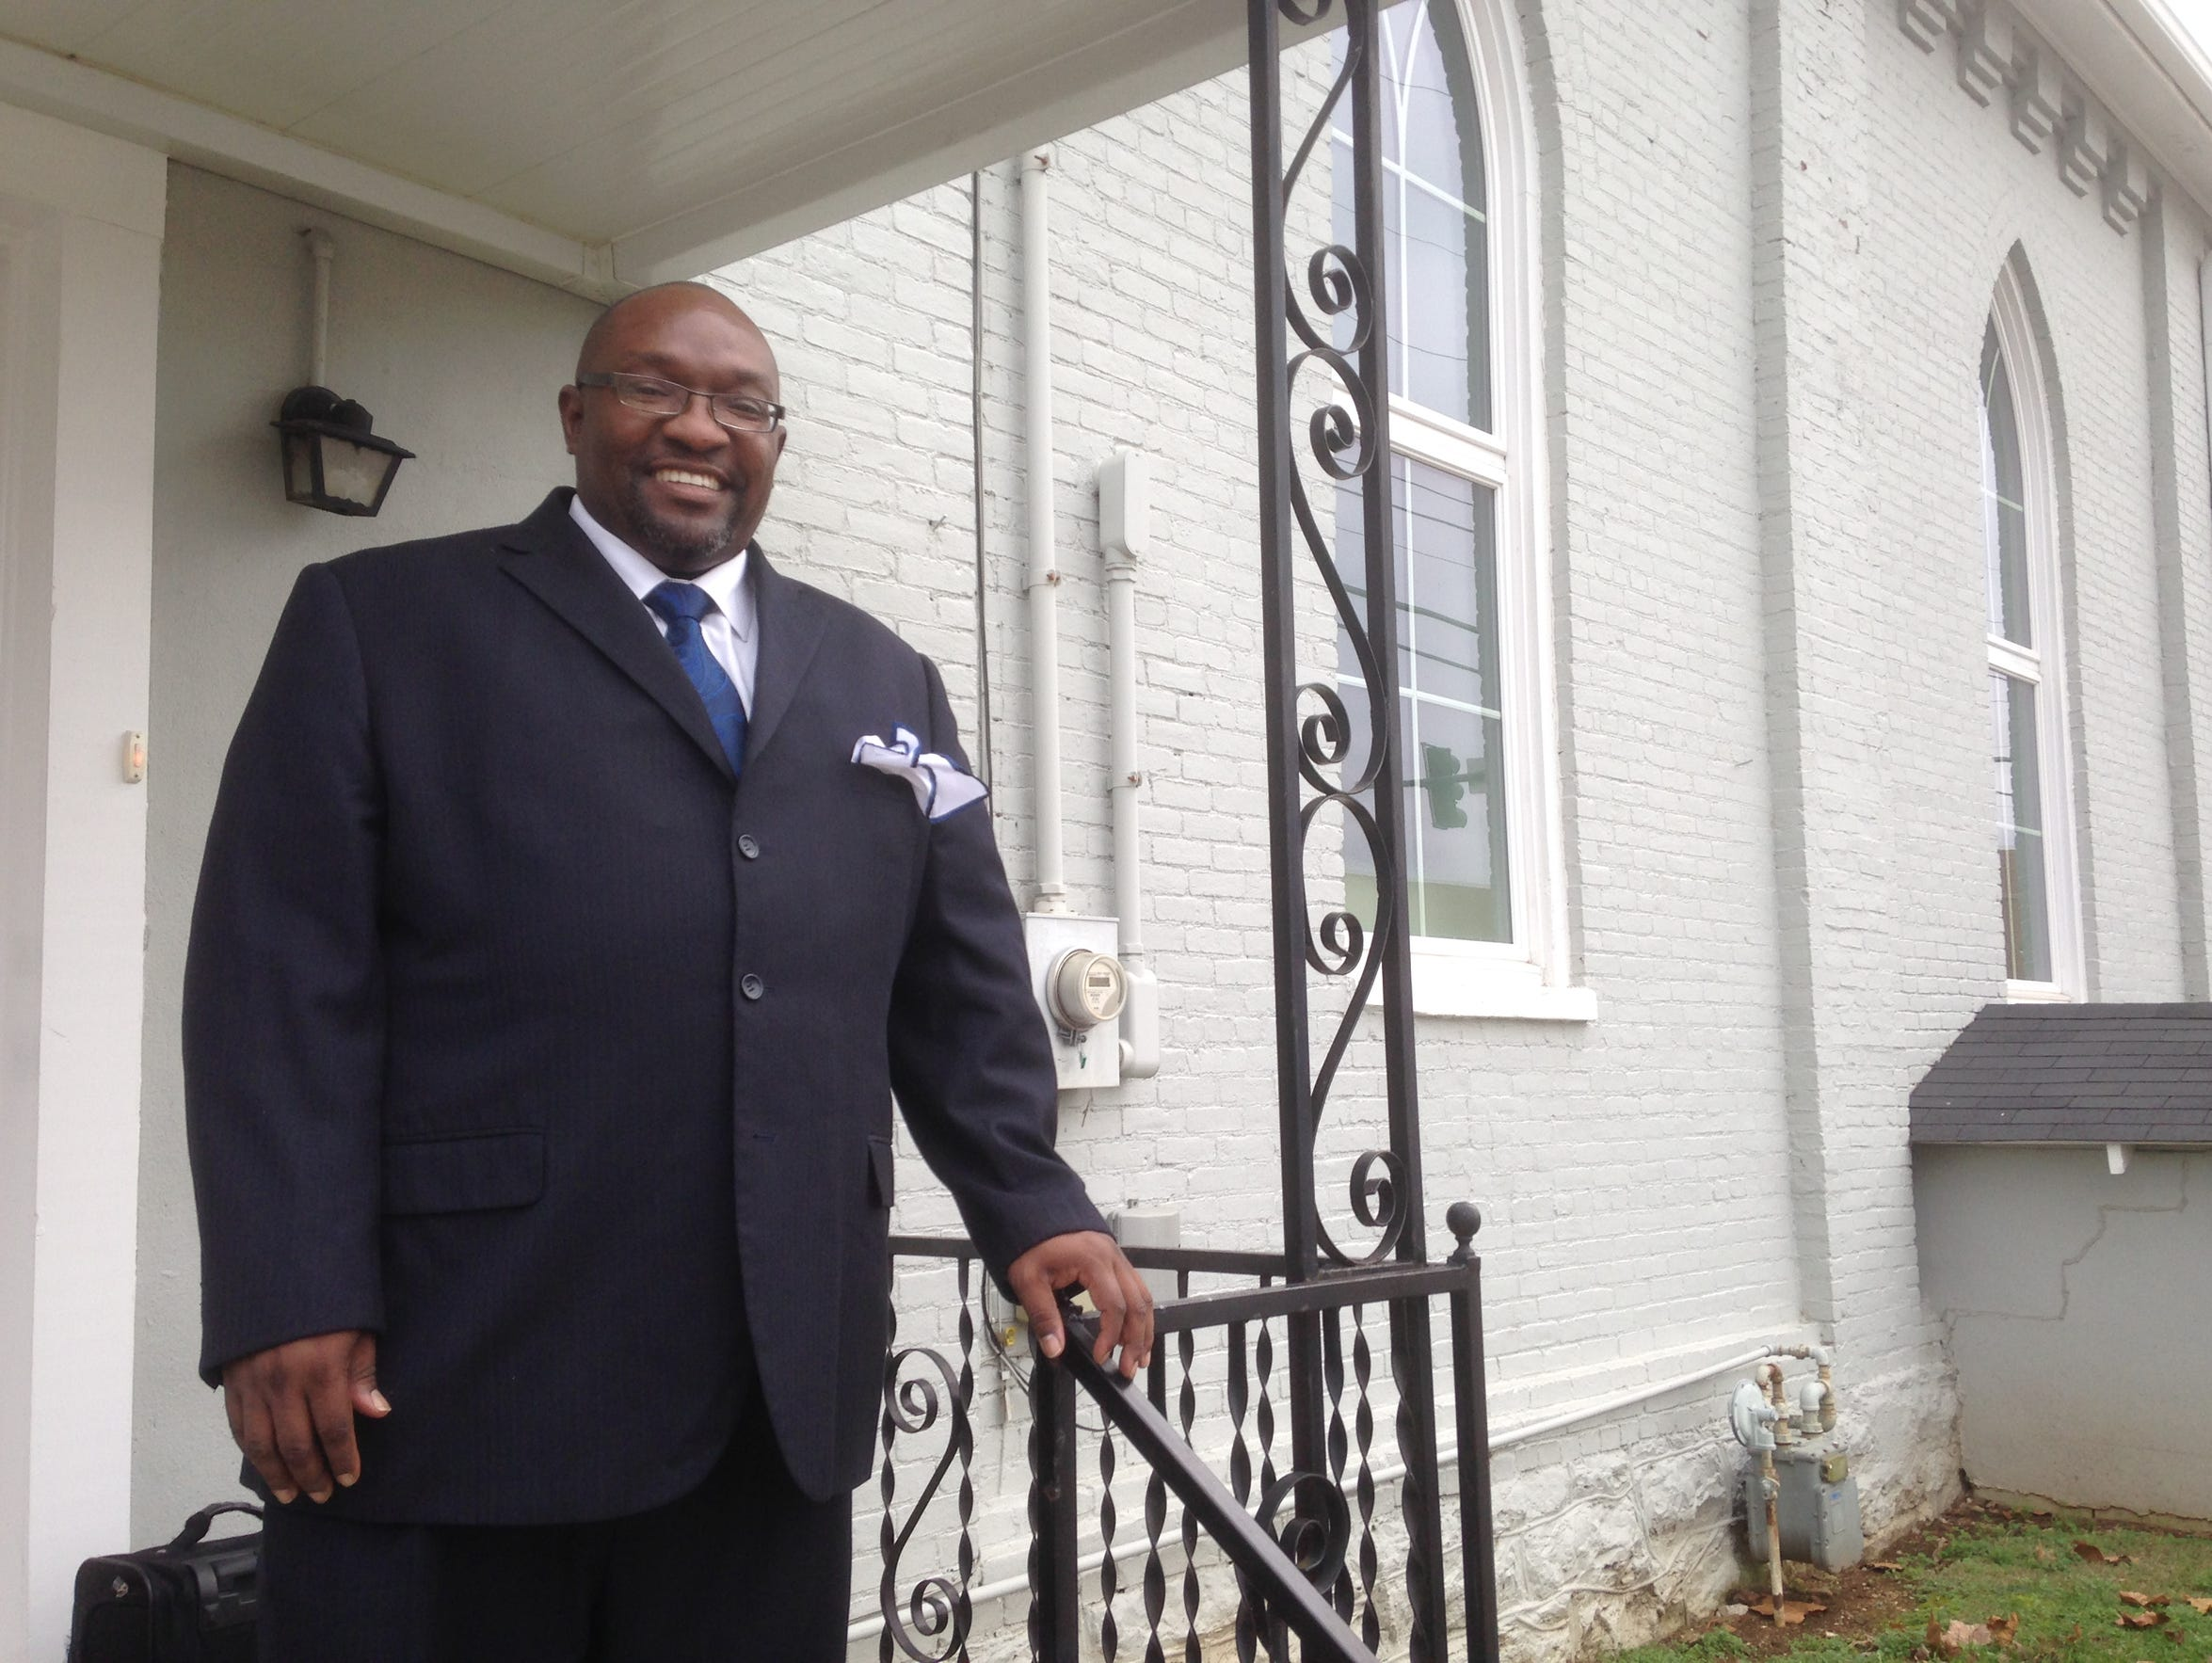 Jerry Marable, pastor of Mt. Zion Missionary Baptist